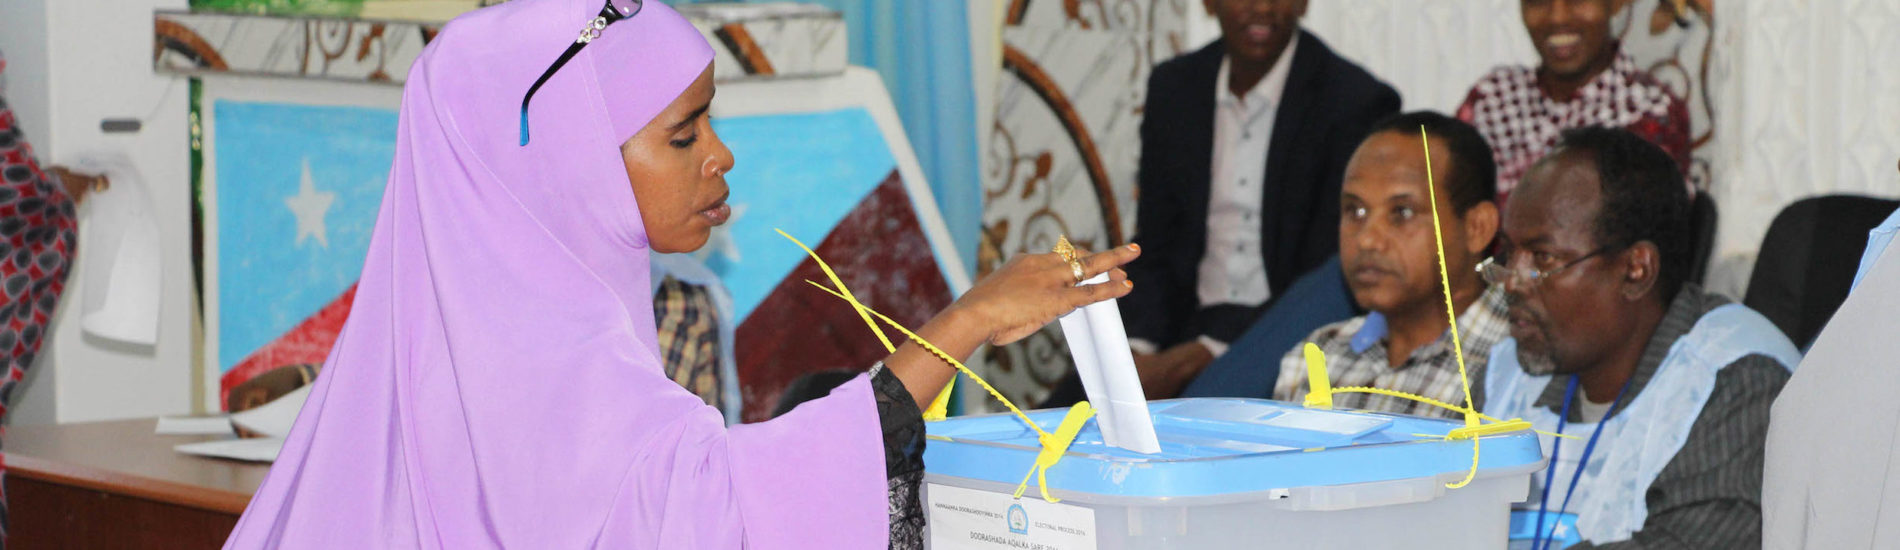 A member of the regional parliament, casts her vote during the election of the Upper House candidates in Baidoa, Somalia on October 19, 2016. AMISOM Photo / Abdikarim Mohamed